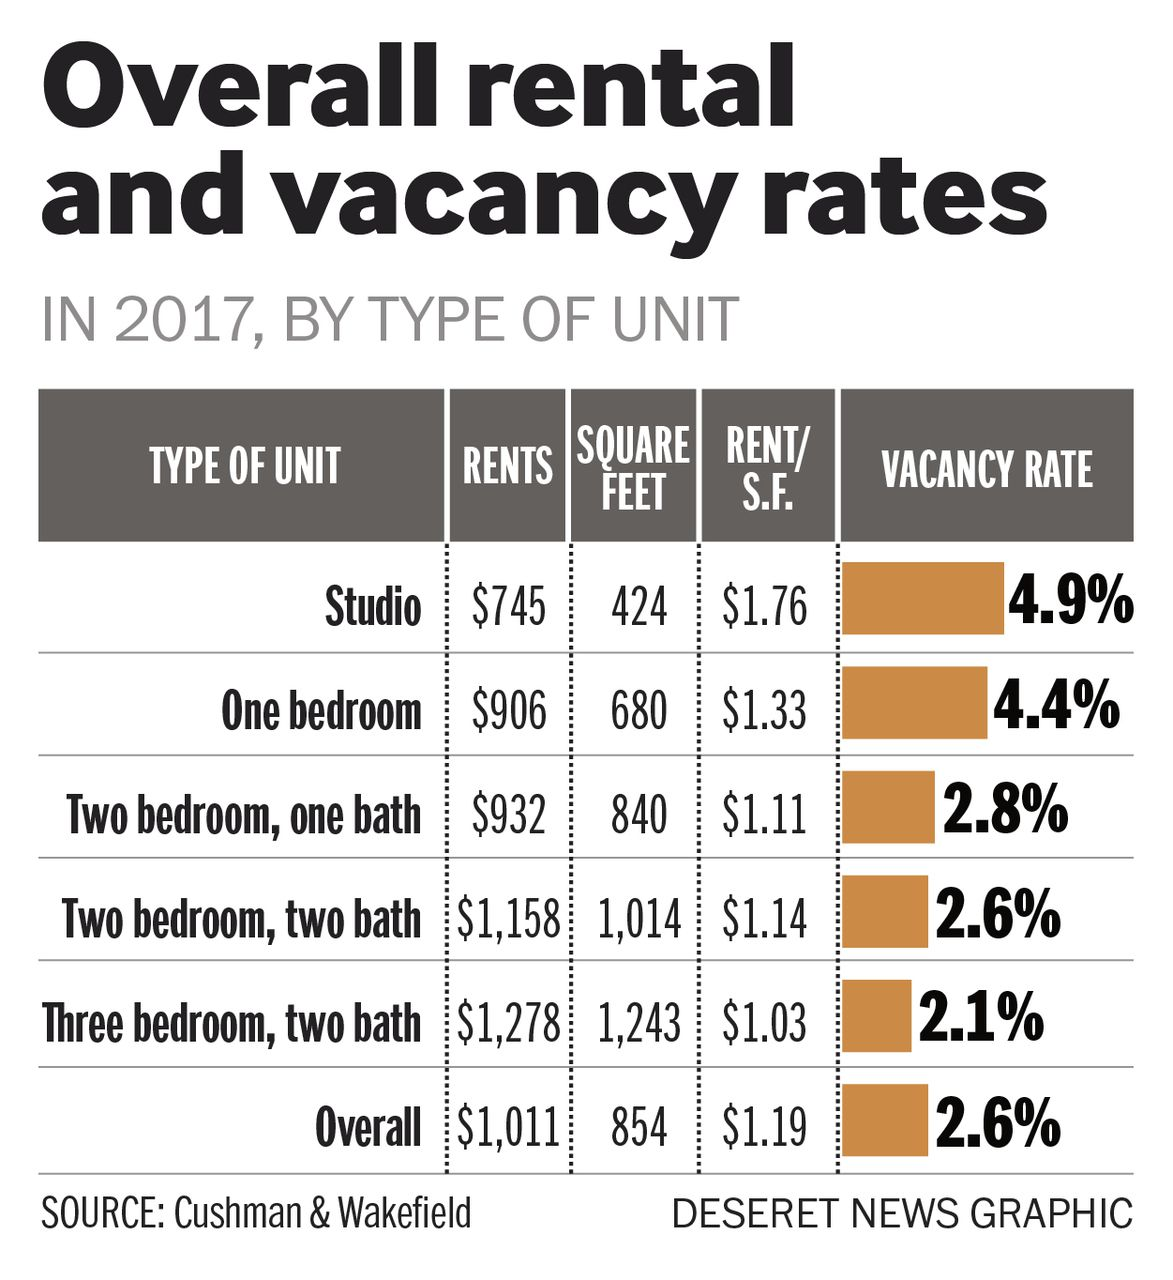 Apartment vacancy rates in Salt Lake area at all-time low